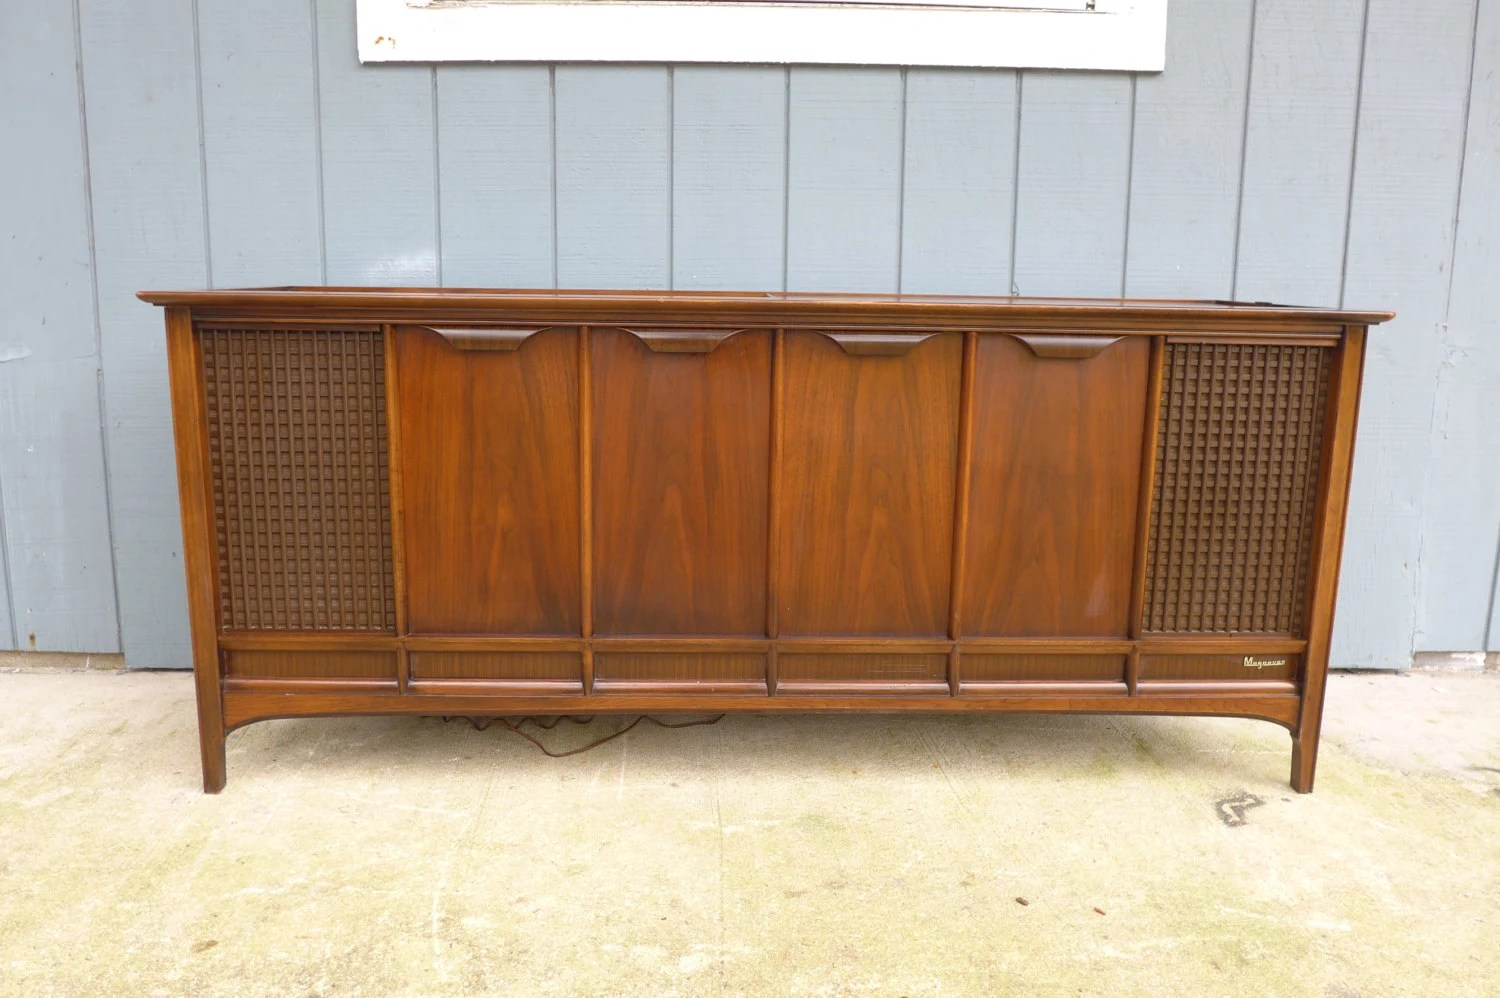 Reserved for Loulou: Magnavox Astro Sonic Console Stereo AM FM